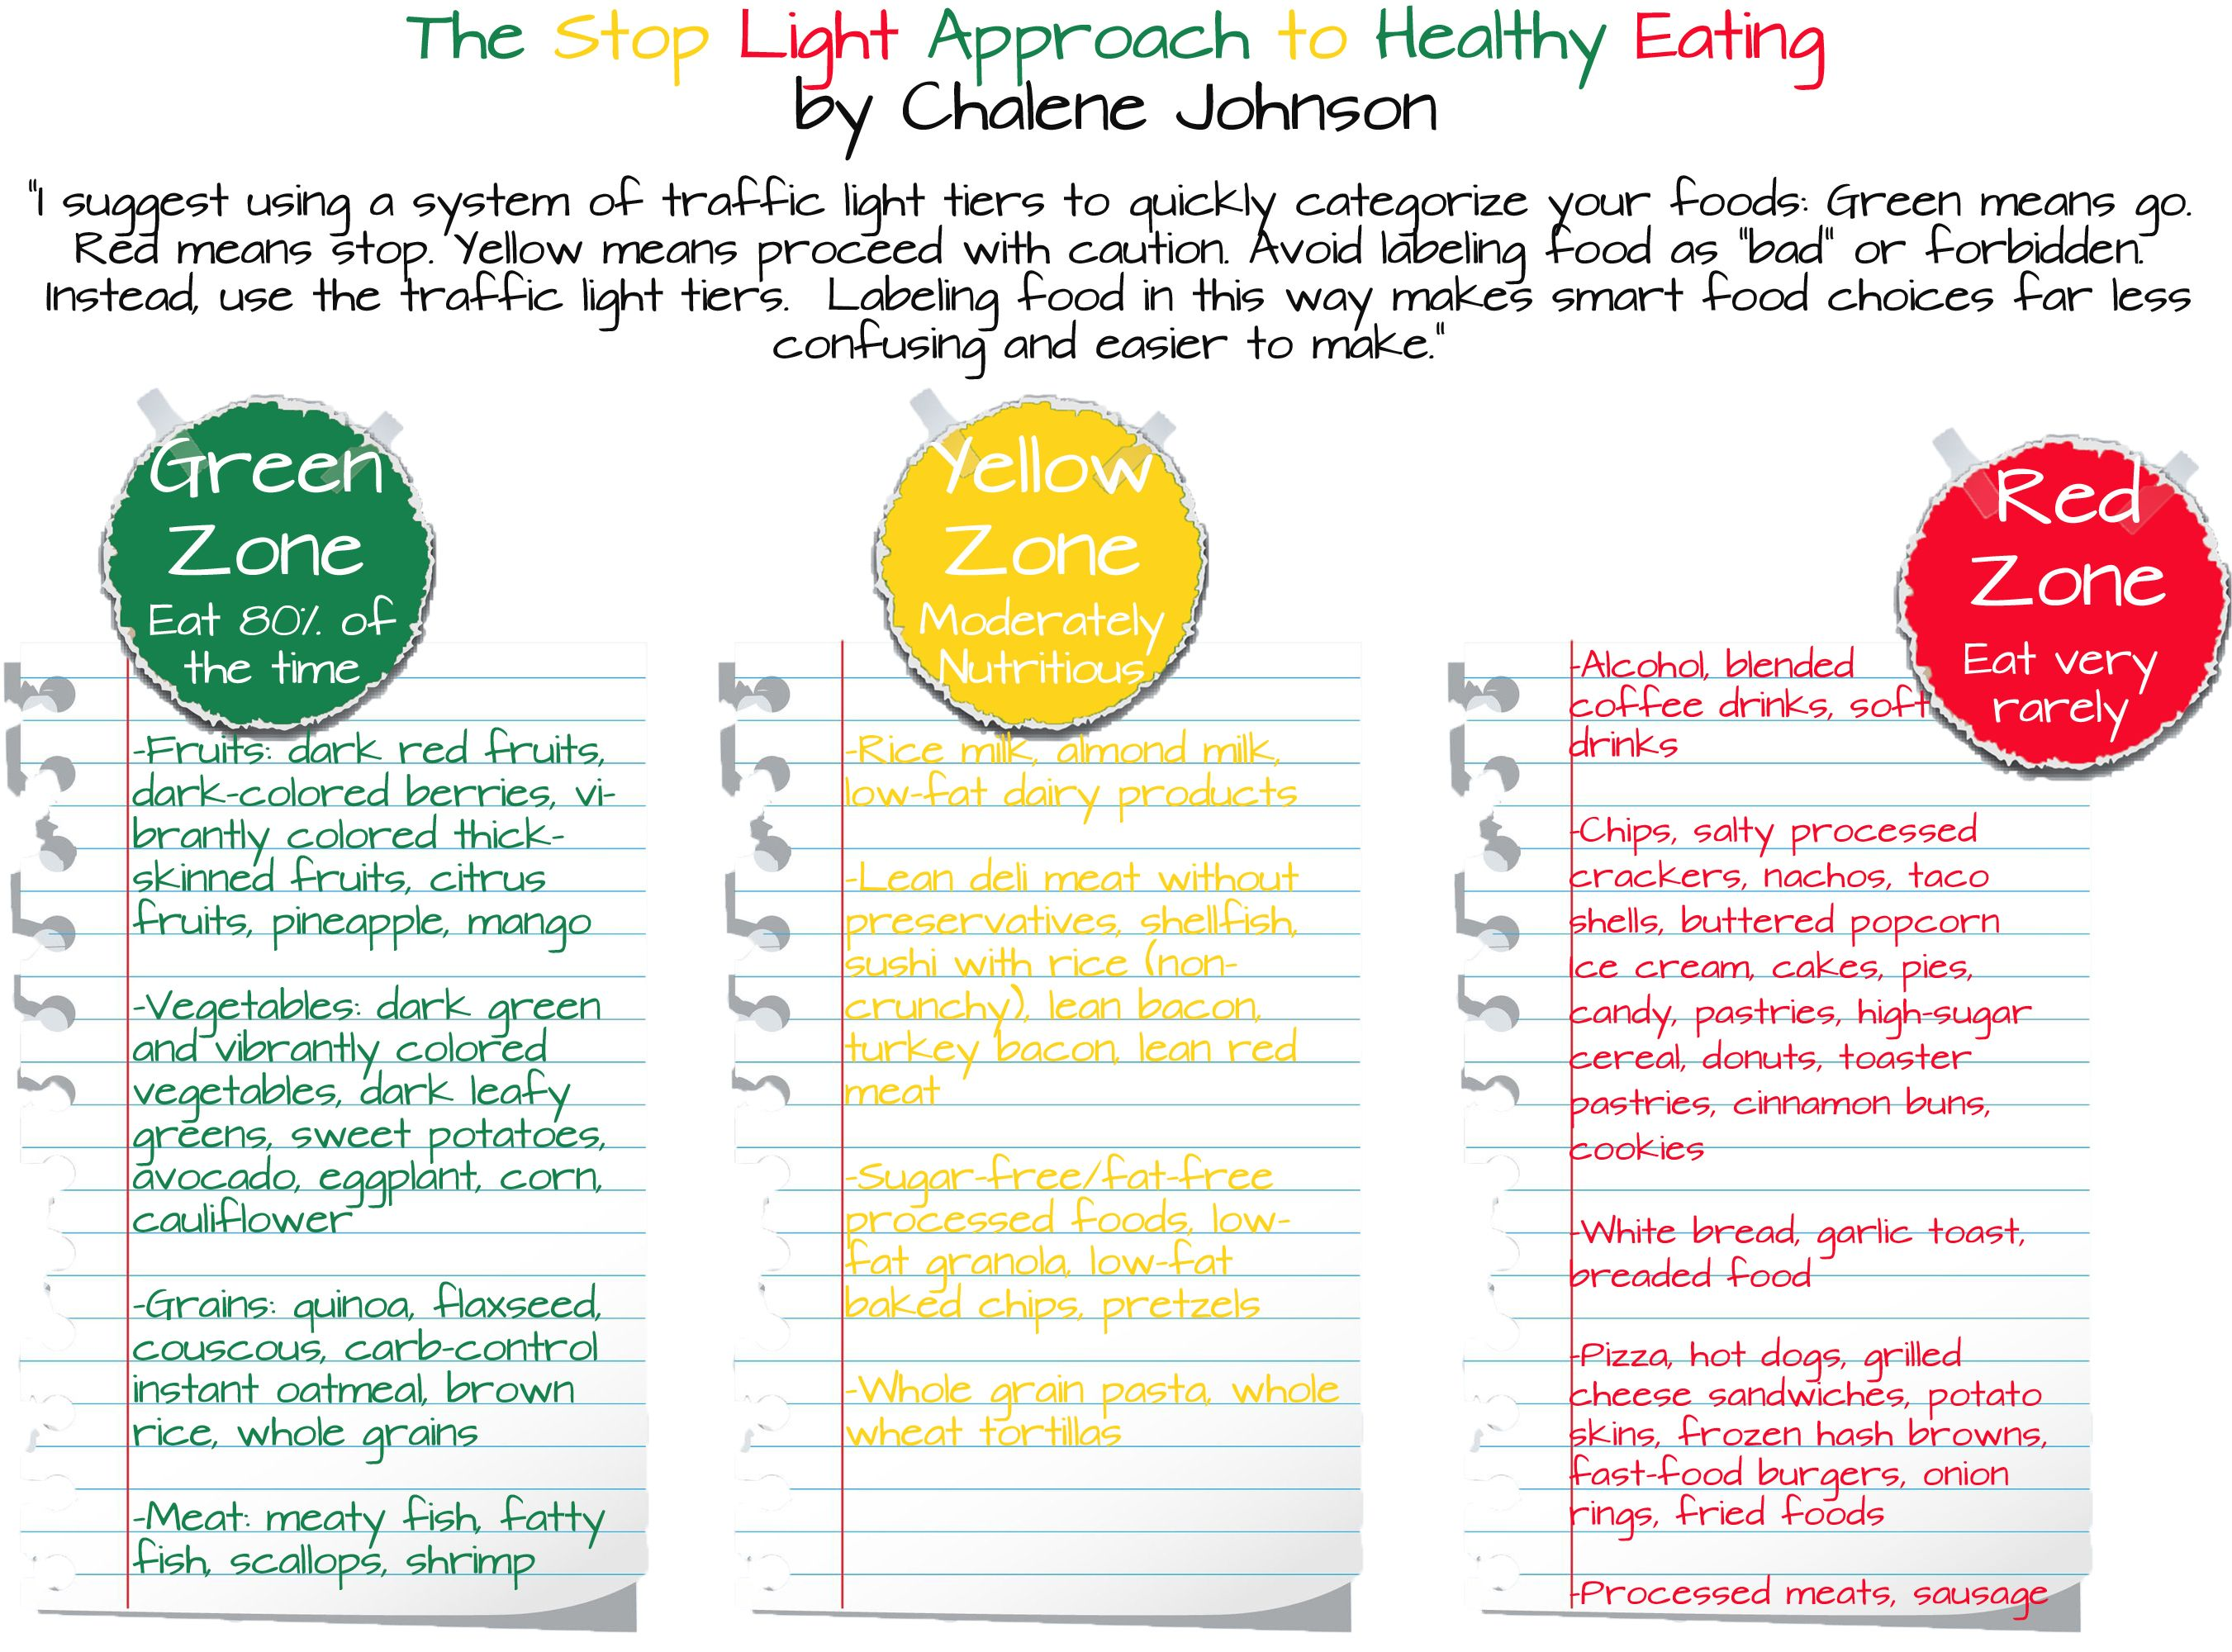 Use Guidelines Not Hard Rules For Your Daily Eating When